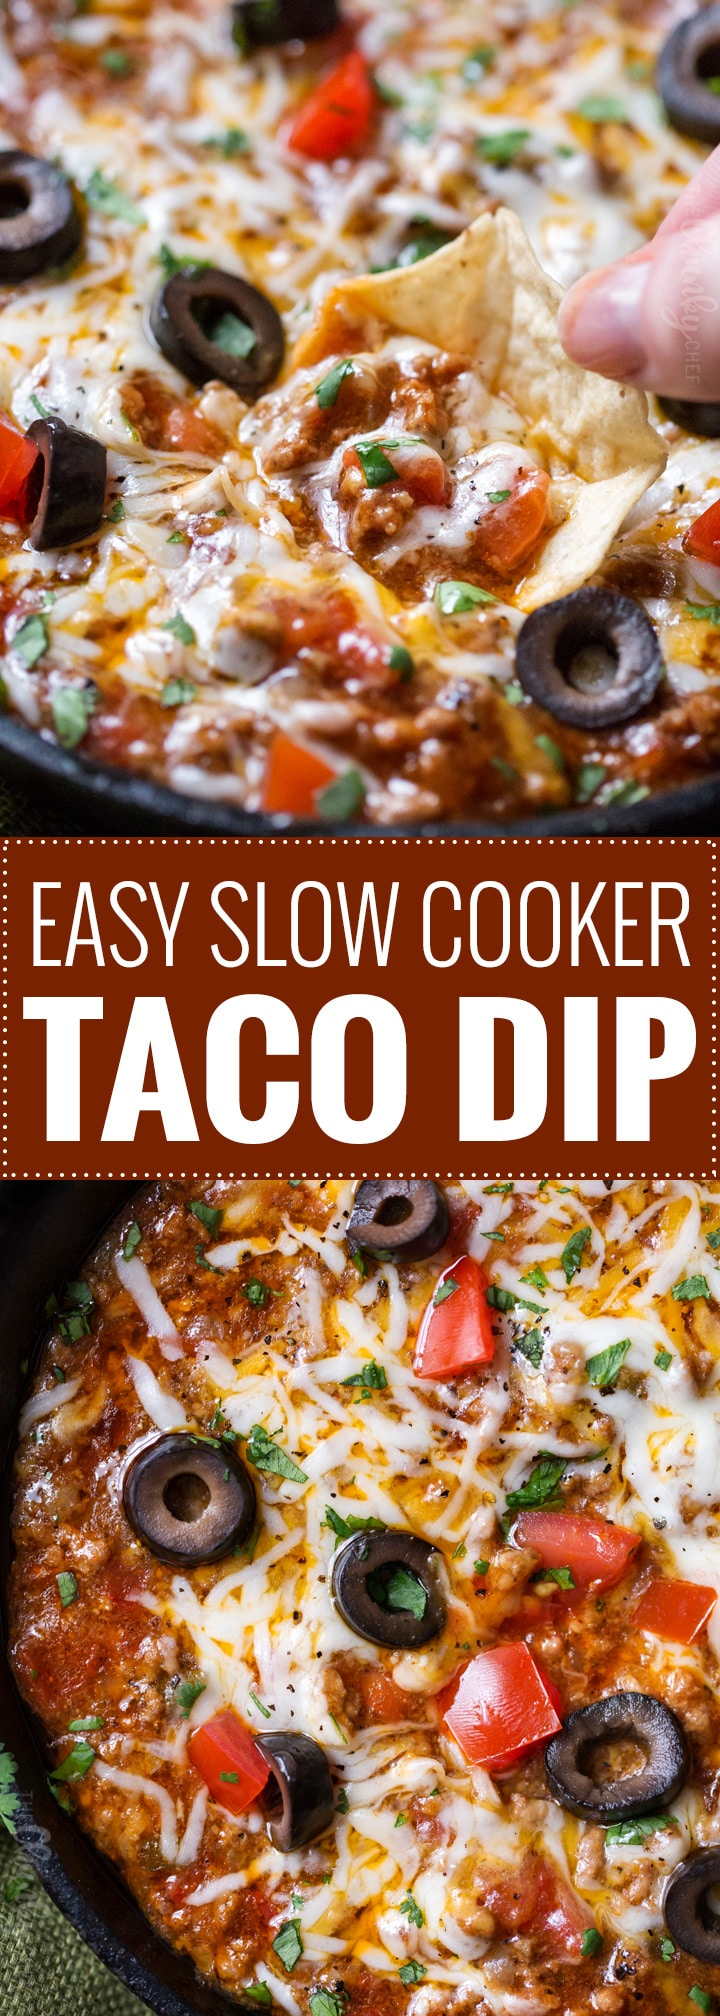 Ultimate Slow Cooker Taco Dip - The Chunky Chef